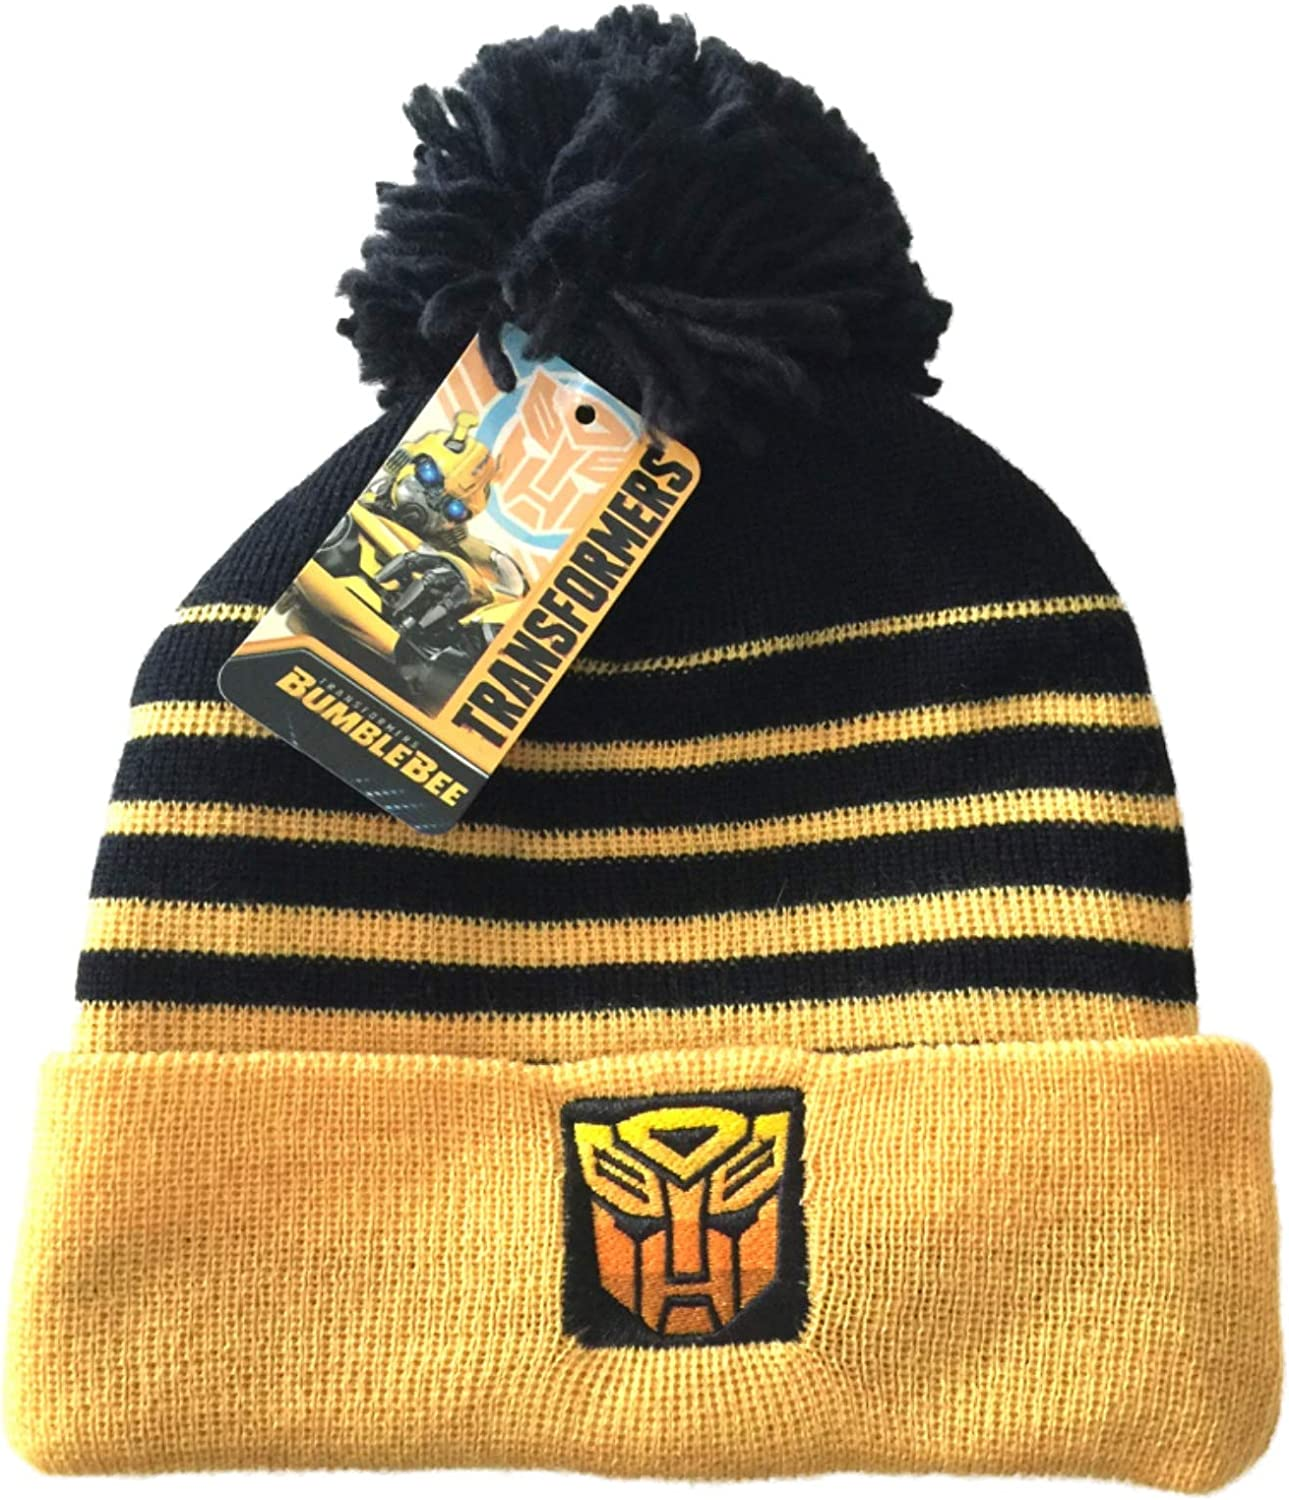 Transform Boys Black /& Yellow Bumble Bee Transformers Beanie Hat Ages 4-12